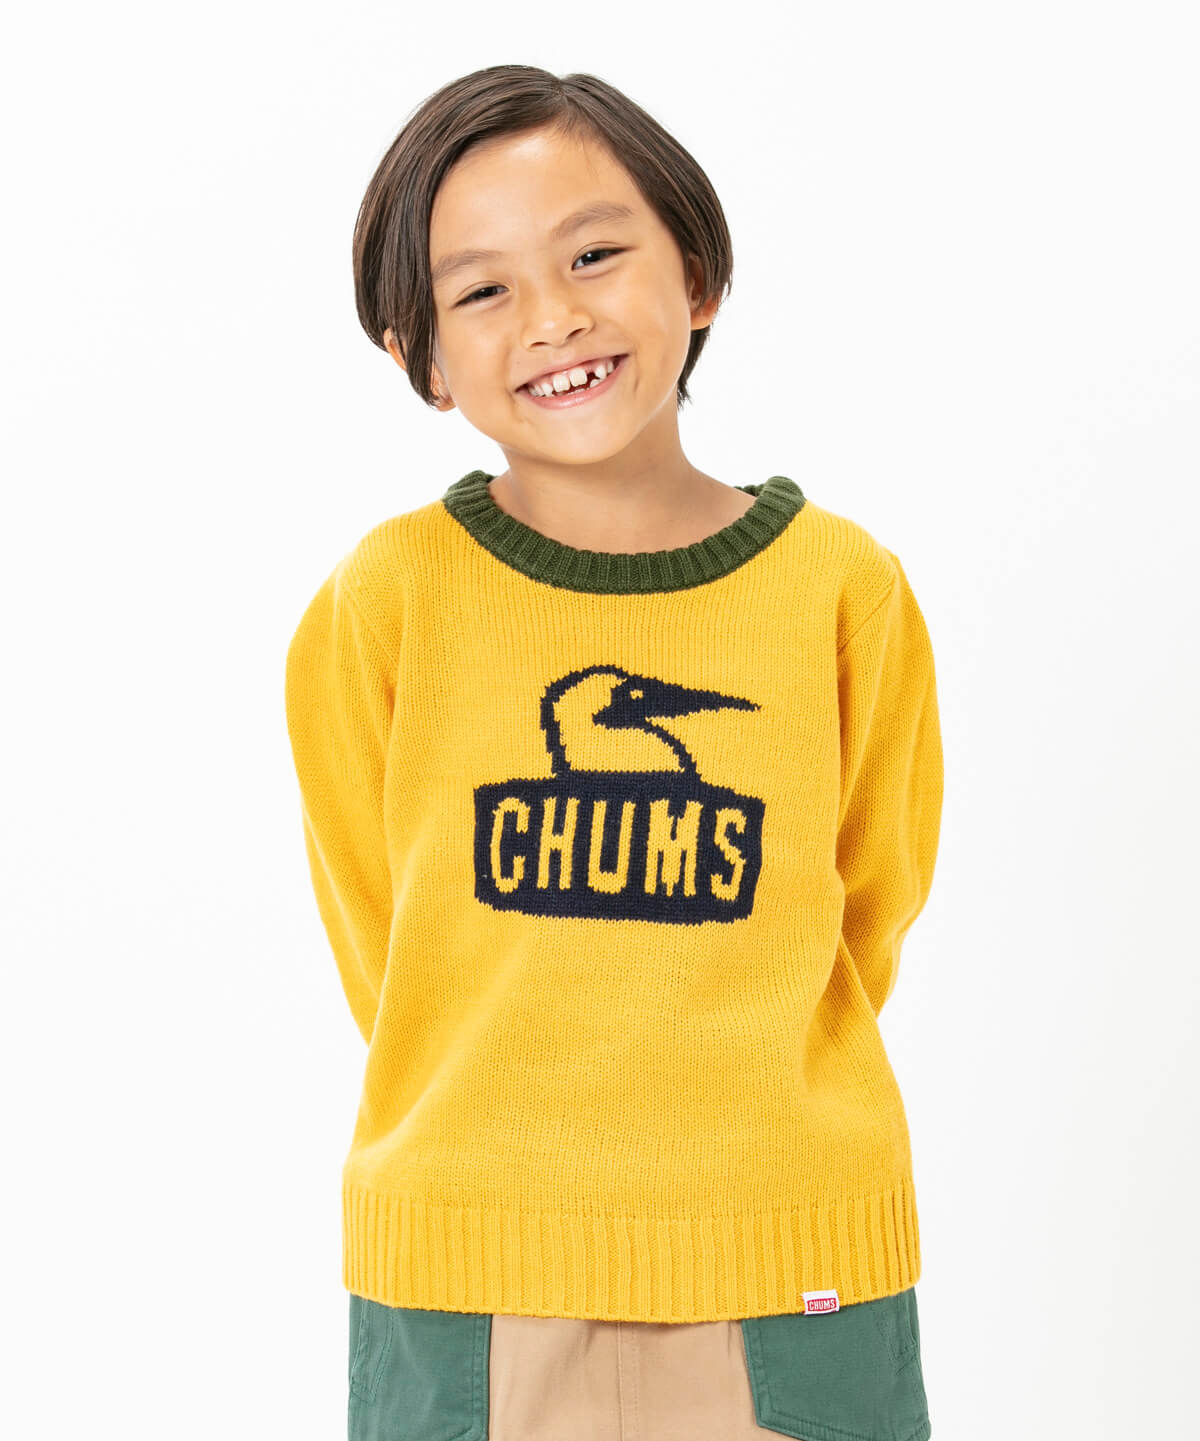 Kid's Cyclone Knit Crew Top(キッズサイクロンニットクルートップ(キッズ|トップス|ニット))